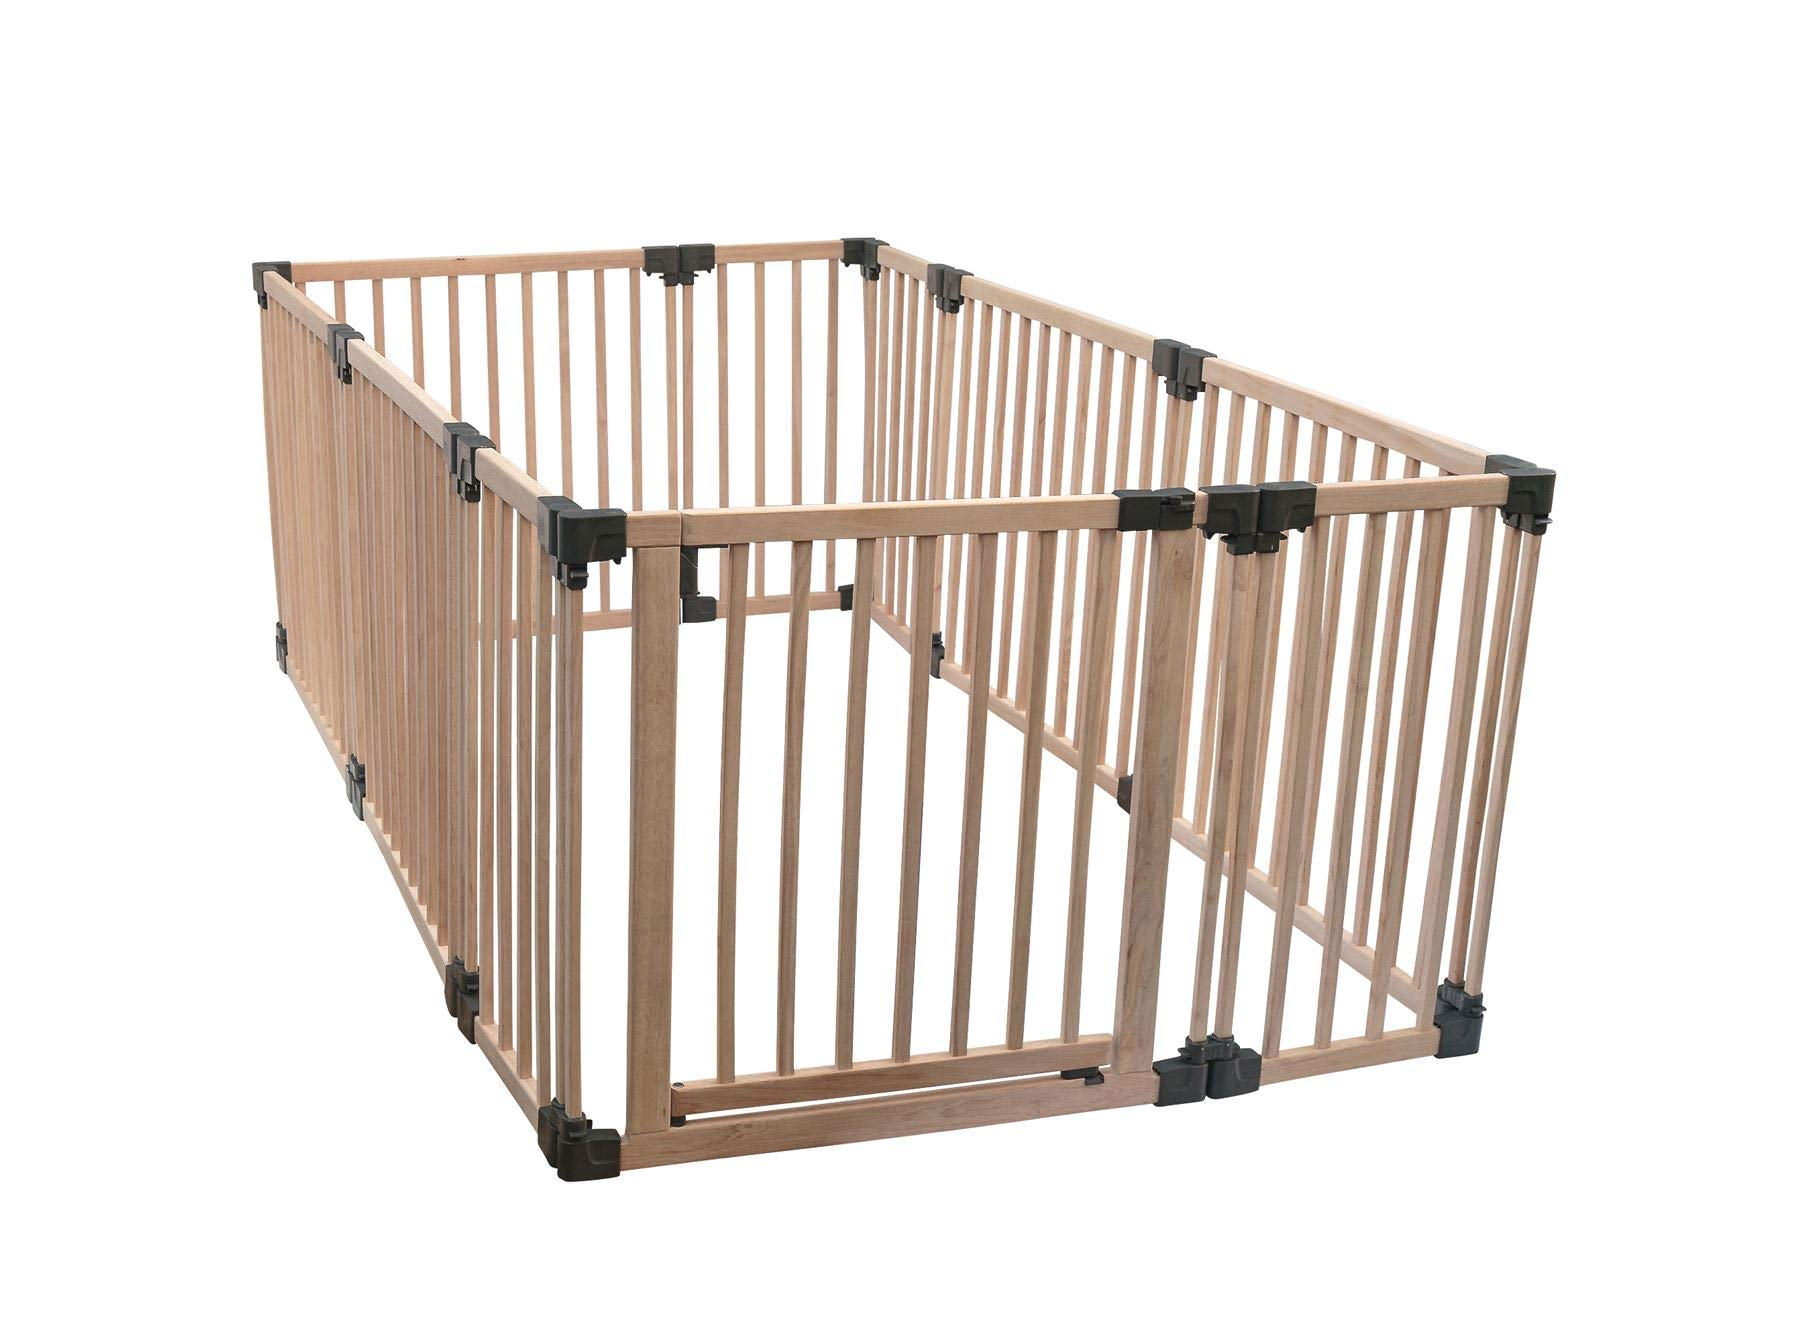 Safetots Play Pen Wooden All Sizes (Large Rectangular) Safetots This configuration is complete with 1x 80cm gate panel, 5x 80cm panels, and 4x 40cm panels. Made from premium grade wood designed to compliment all home interiors Extra Wide Door Section for Easy Access, with simple slide and lift opening mechanism 1